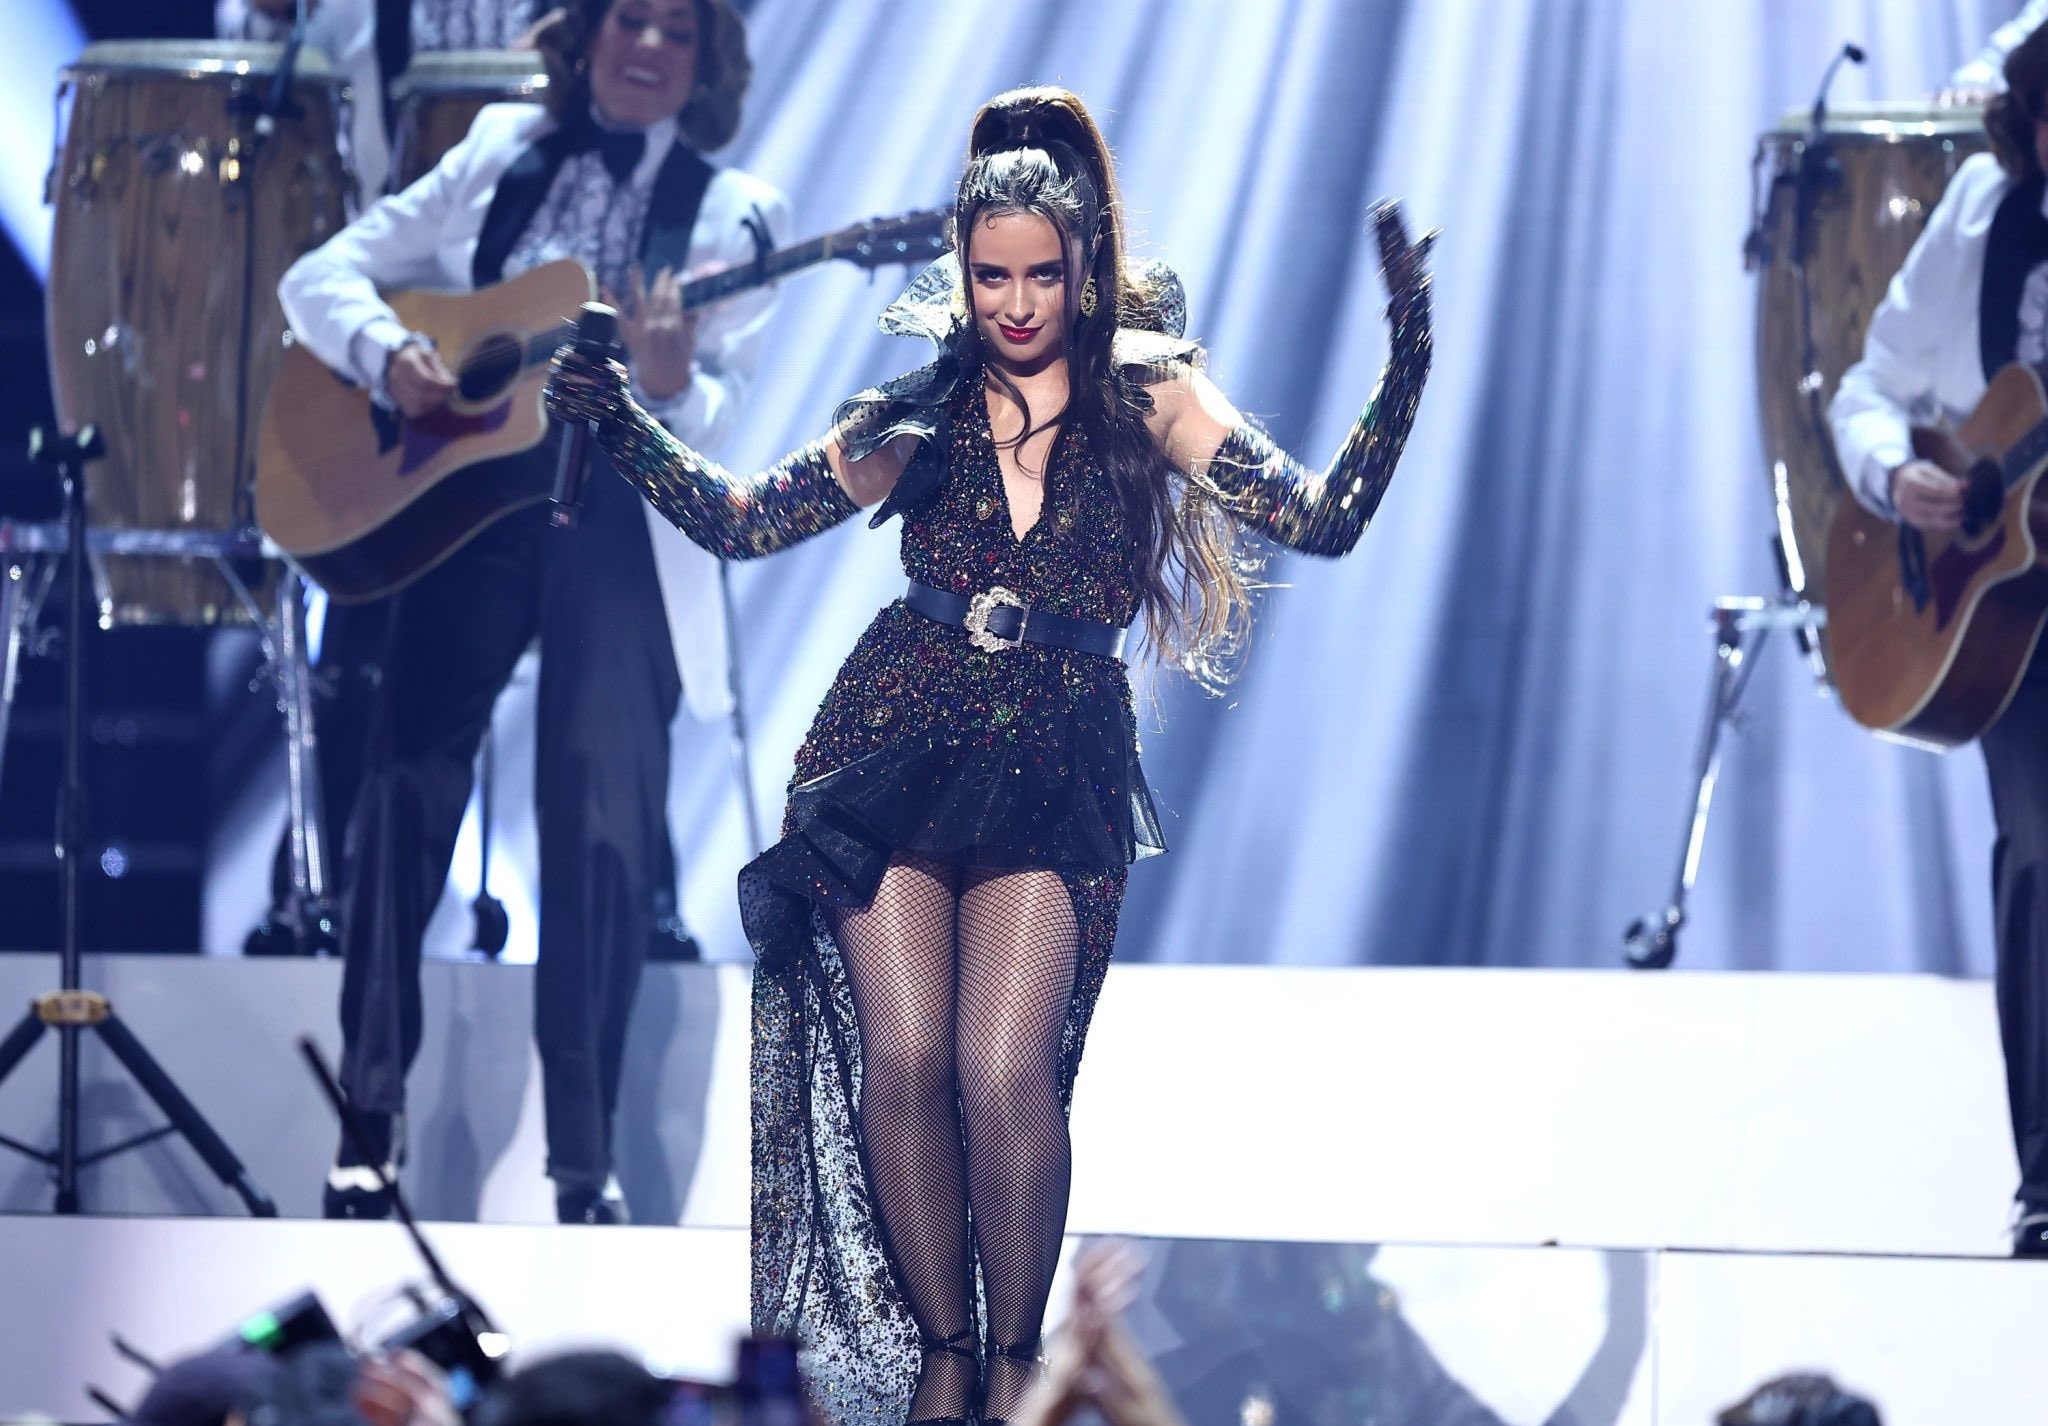 The Cinderella actress changed into a black beaded Zuhair Murad FW/21 couture collection dress for her performance